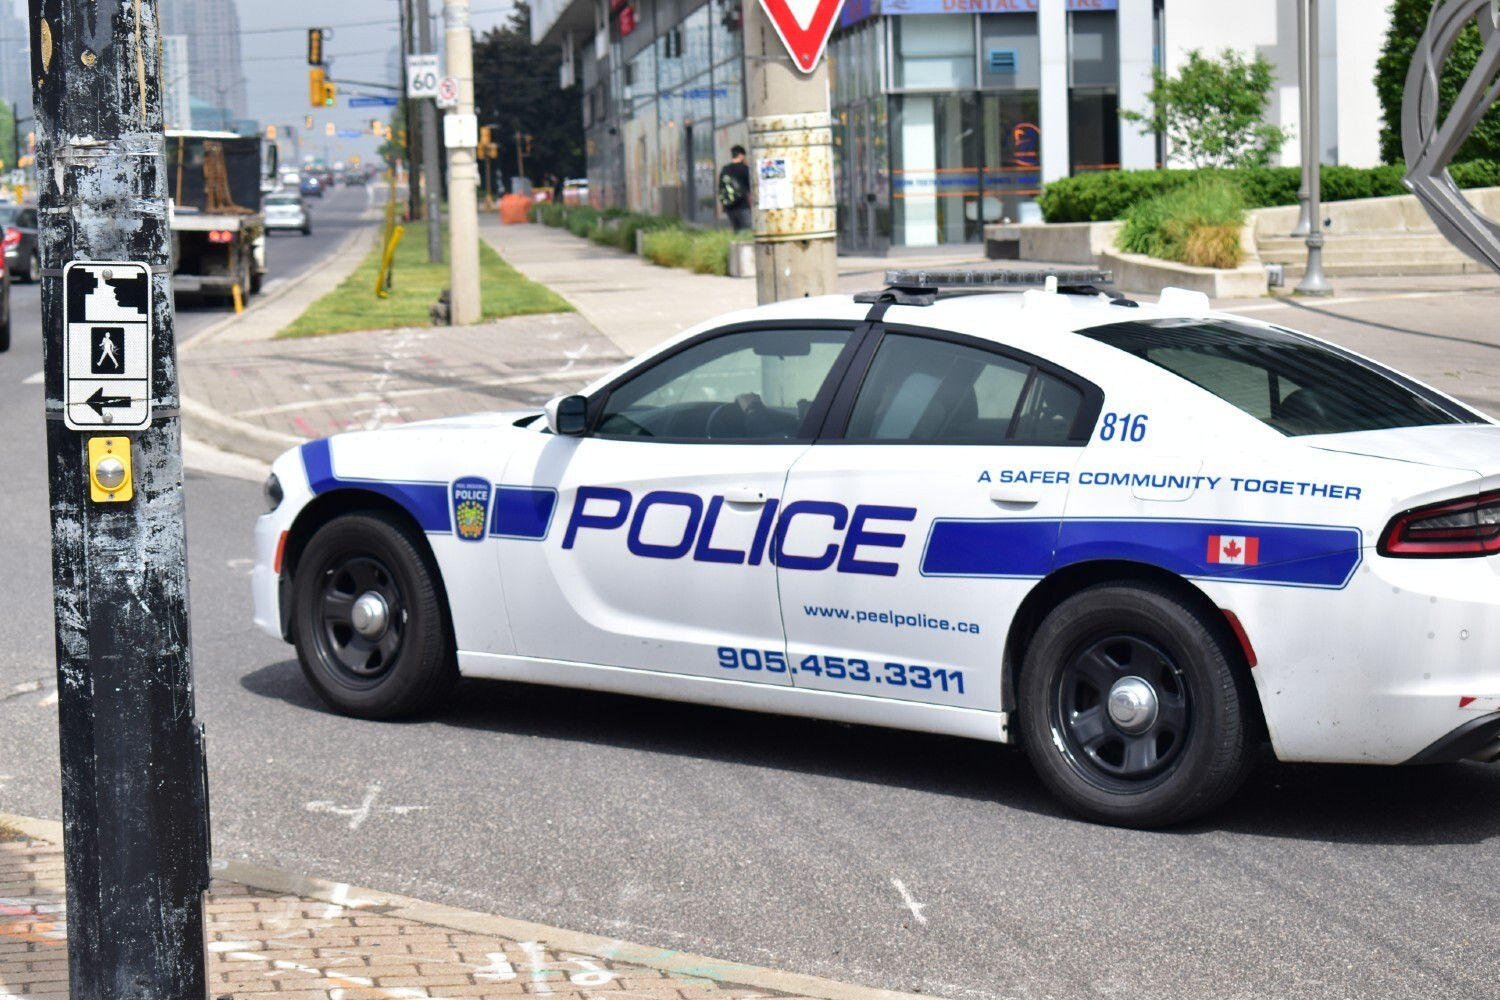 Former Peel police cadet facing multiple domestic abuse charges raises questions about force's hiring